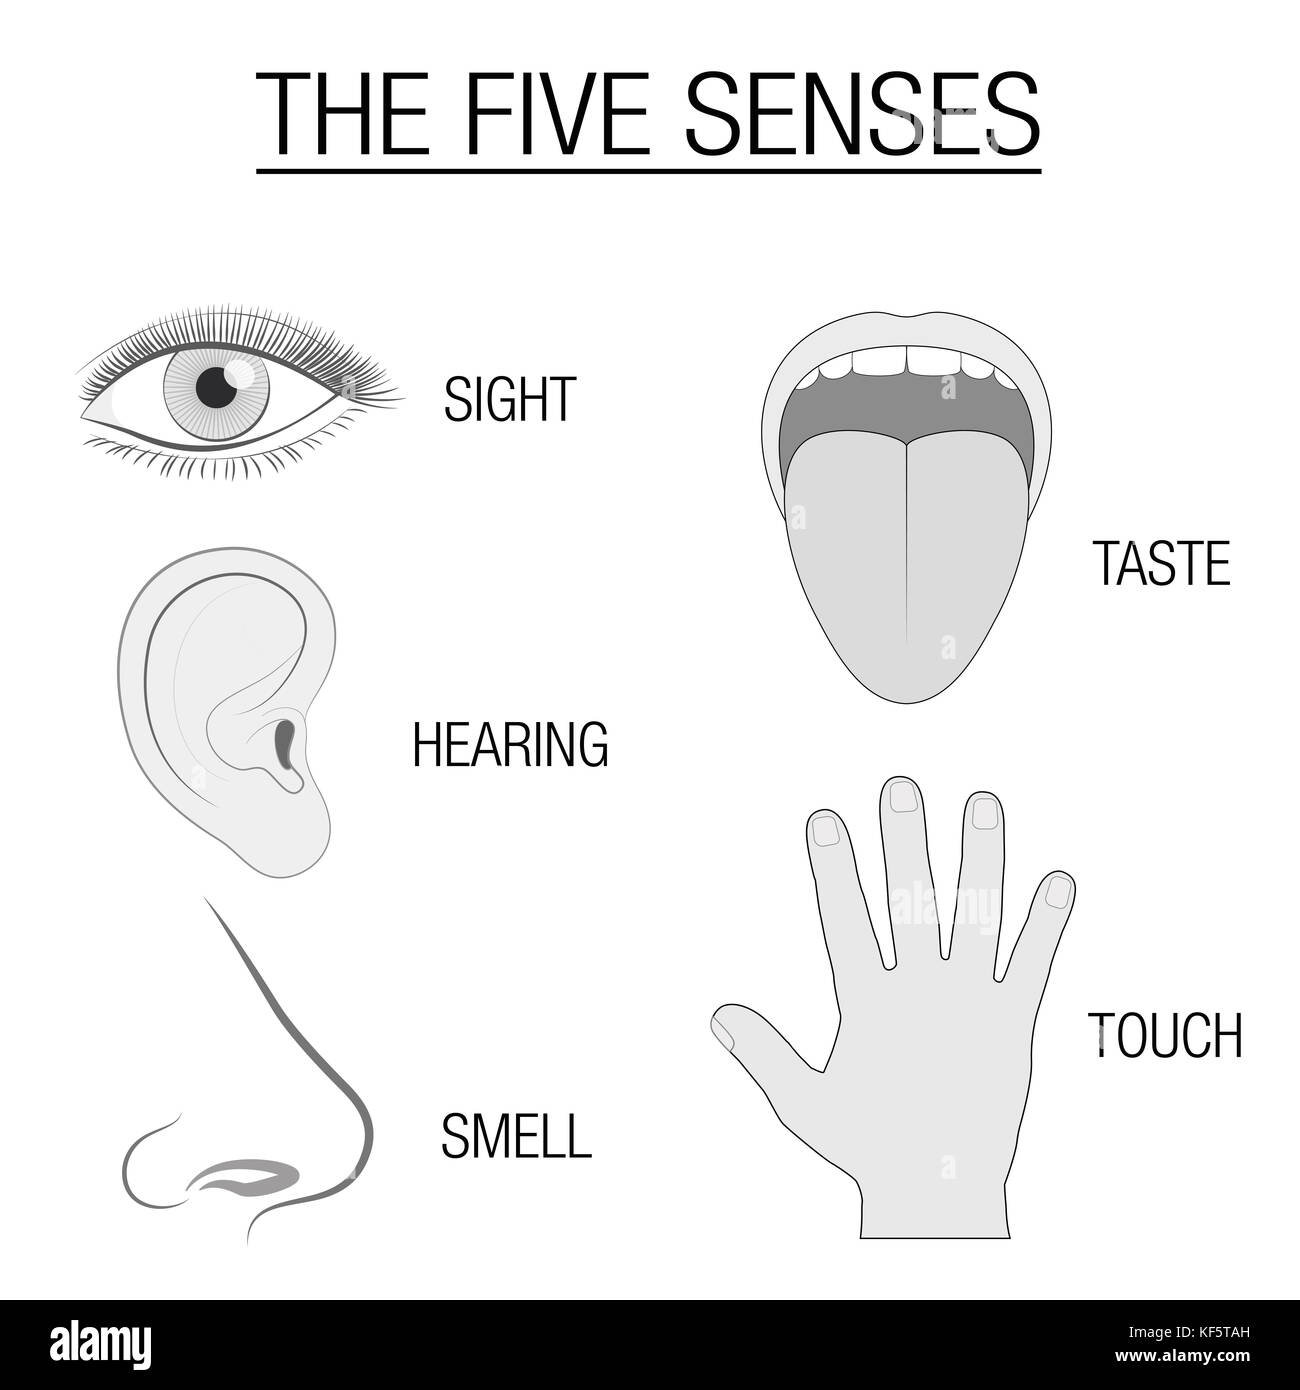 Five Senses Illustration Stock Photos Amp Five Senses